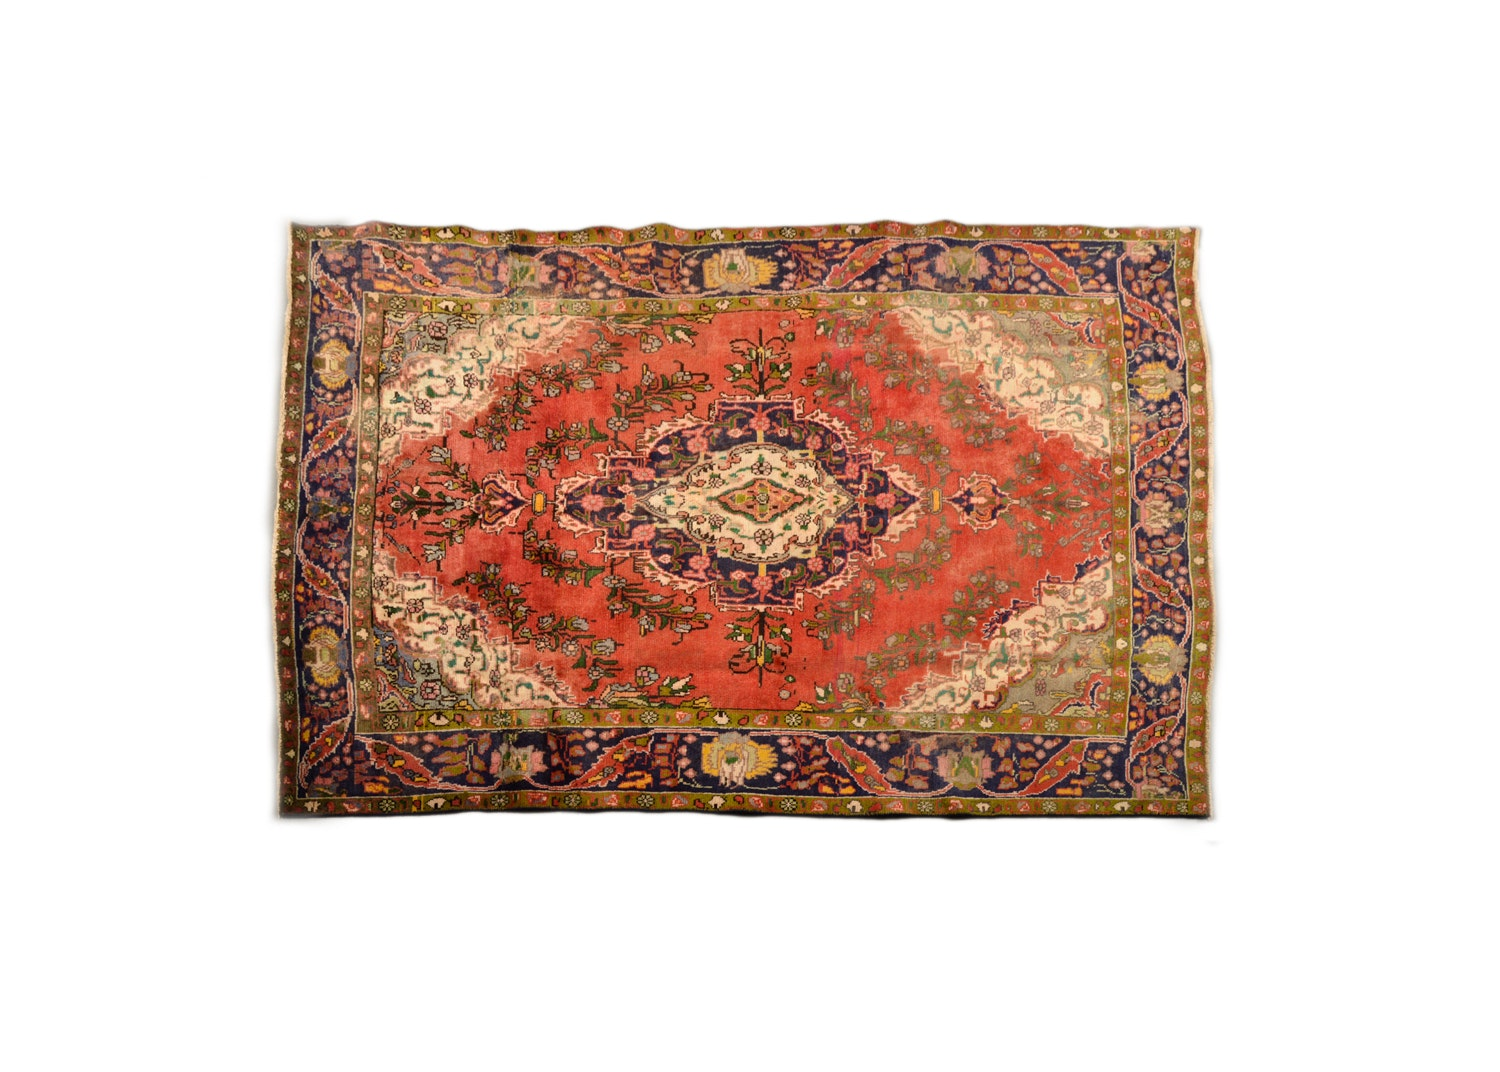 Vintage Hand-Knotted Persian Wool Area Rug